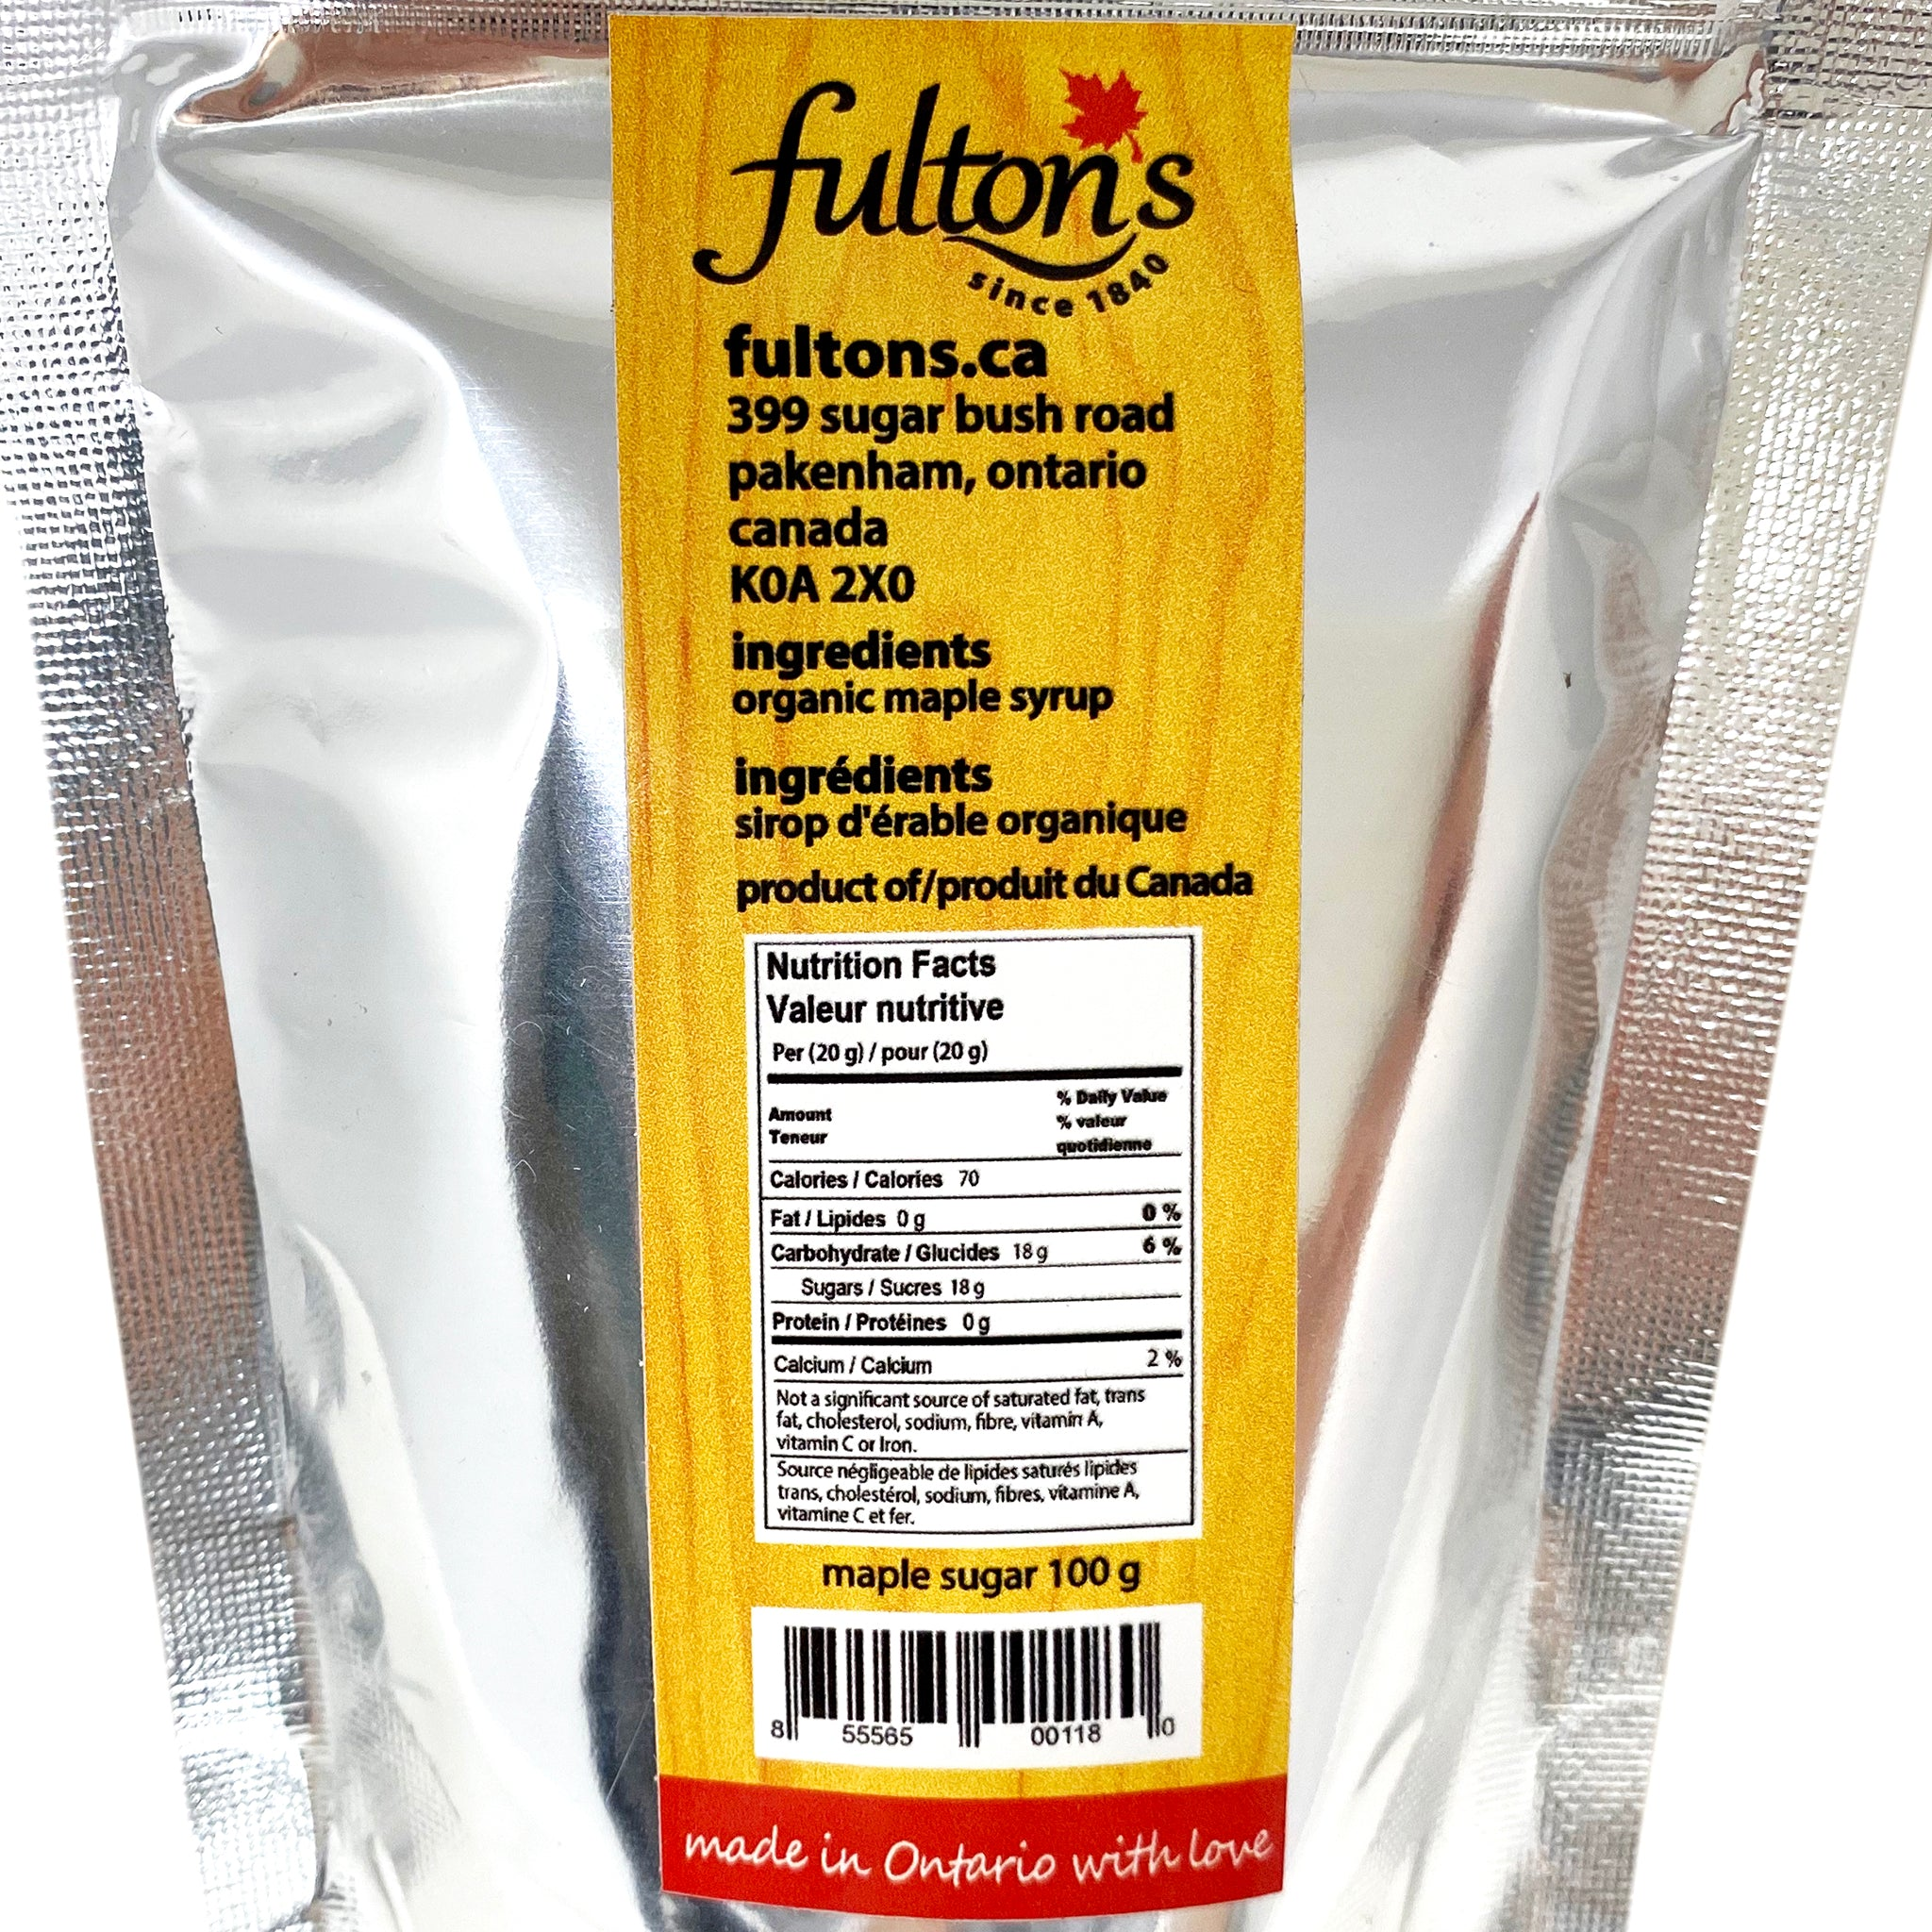 Fulton's Maple Sugar, 100g